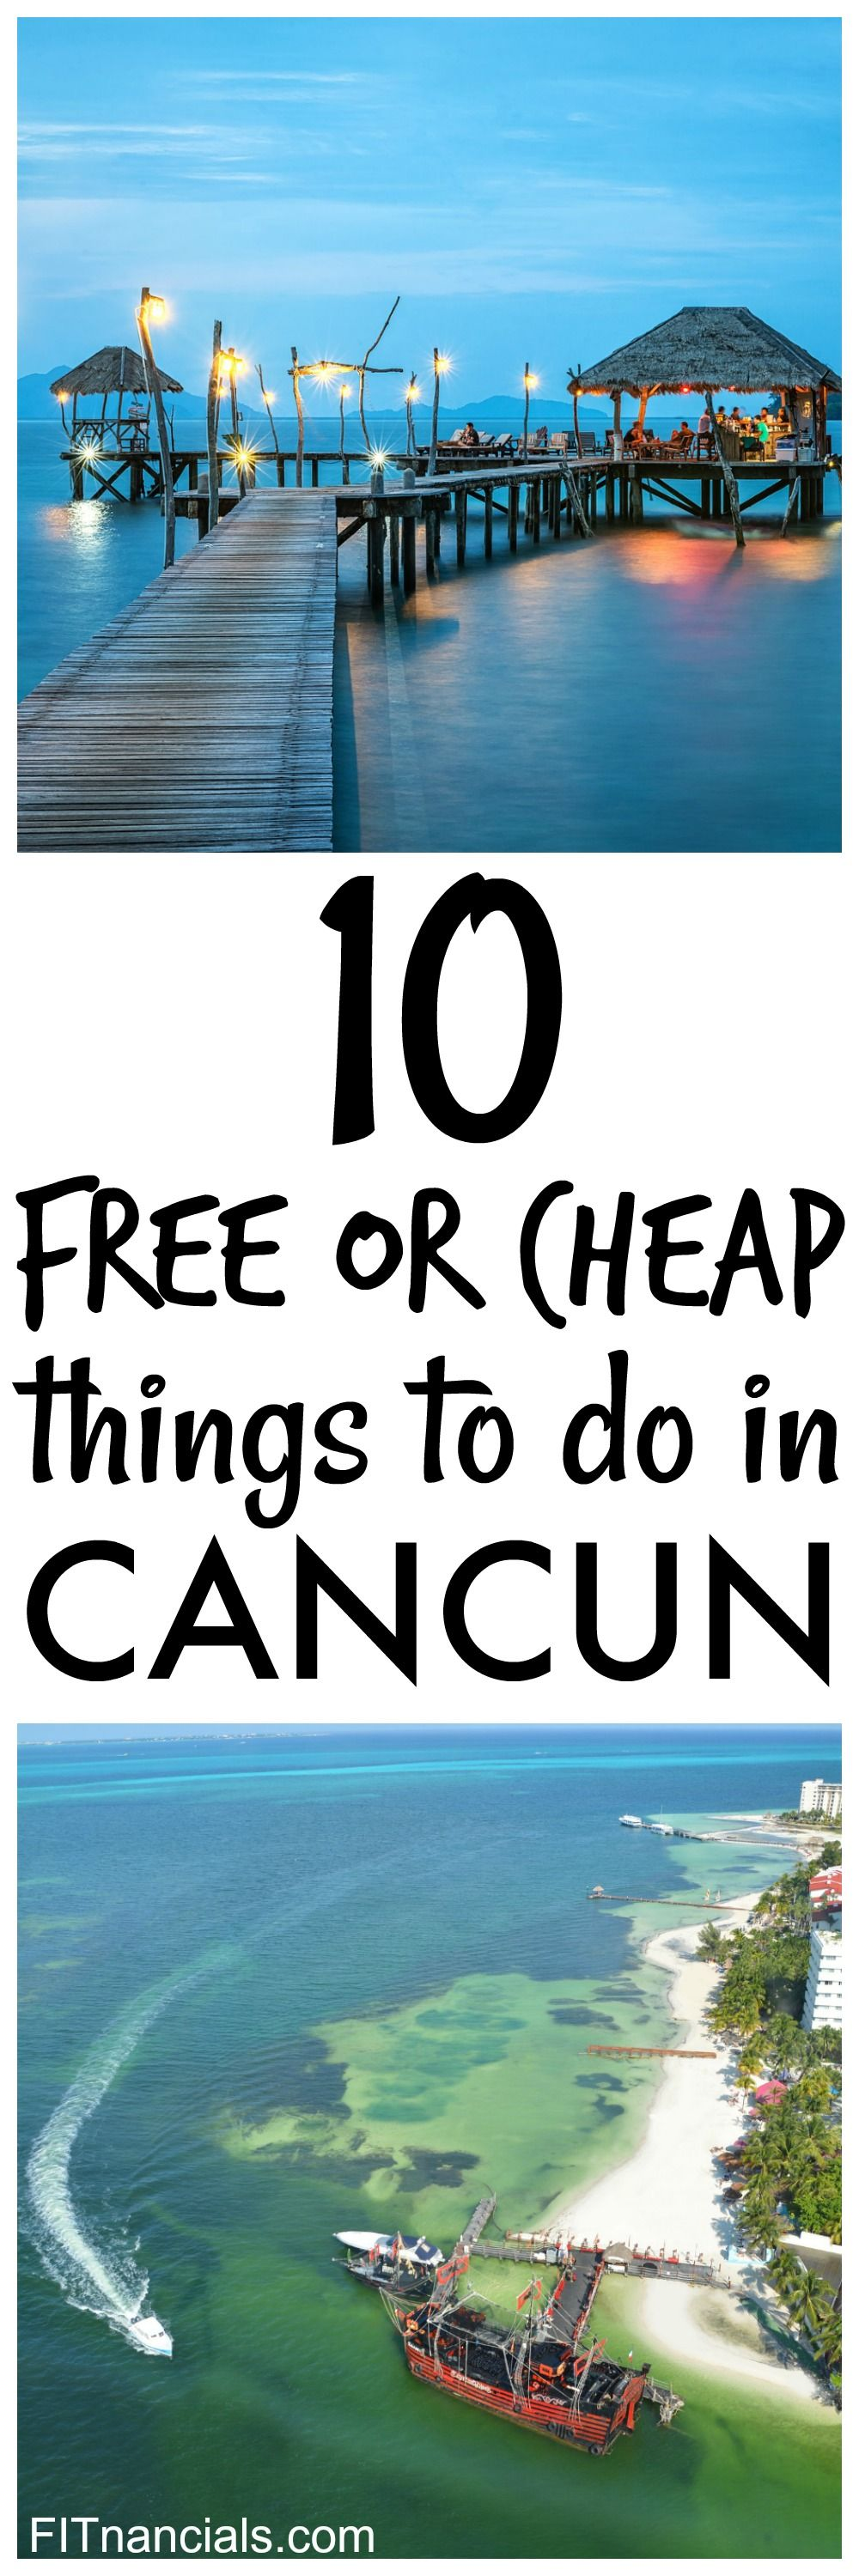 The Best Time To Visit Cancun In 2018: 10 Free Or Cheap Things To Do In Cancun